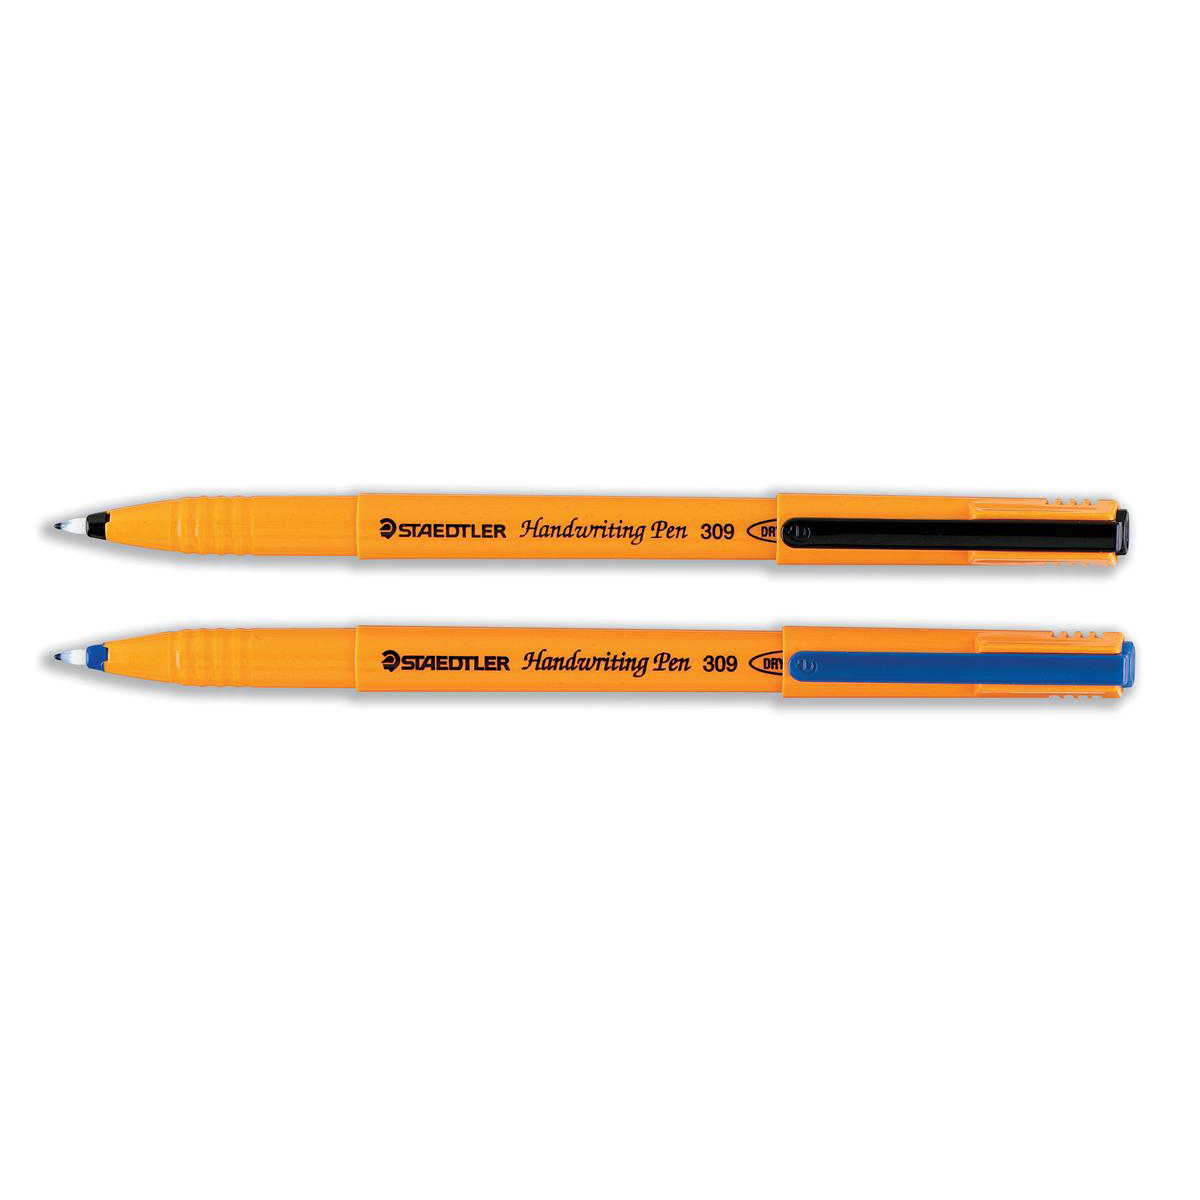 Staedtler 309 Handwriting Pen Fibre Tipped 0.8mm Tip 0.6mm Line Black Ref 309-9 Pack 10